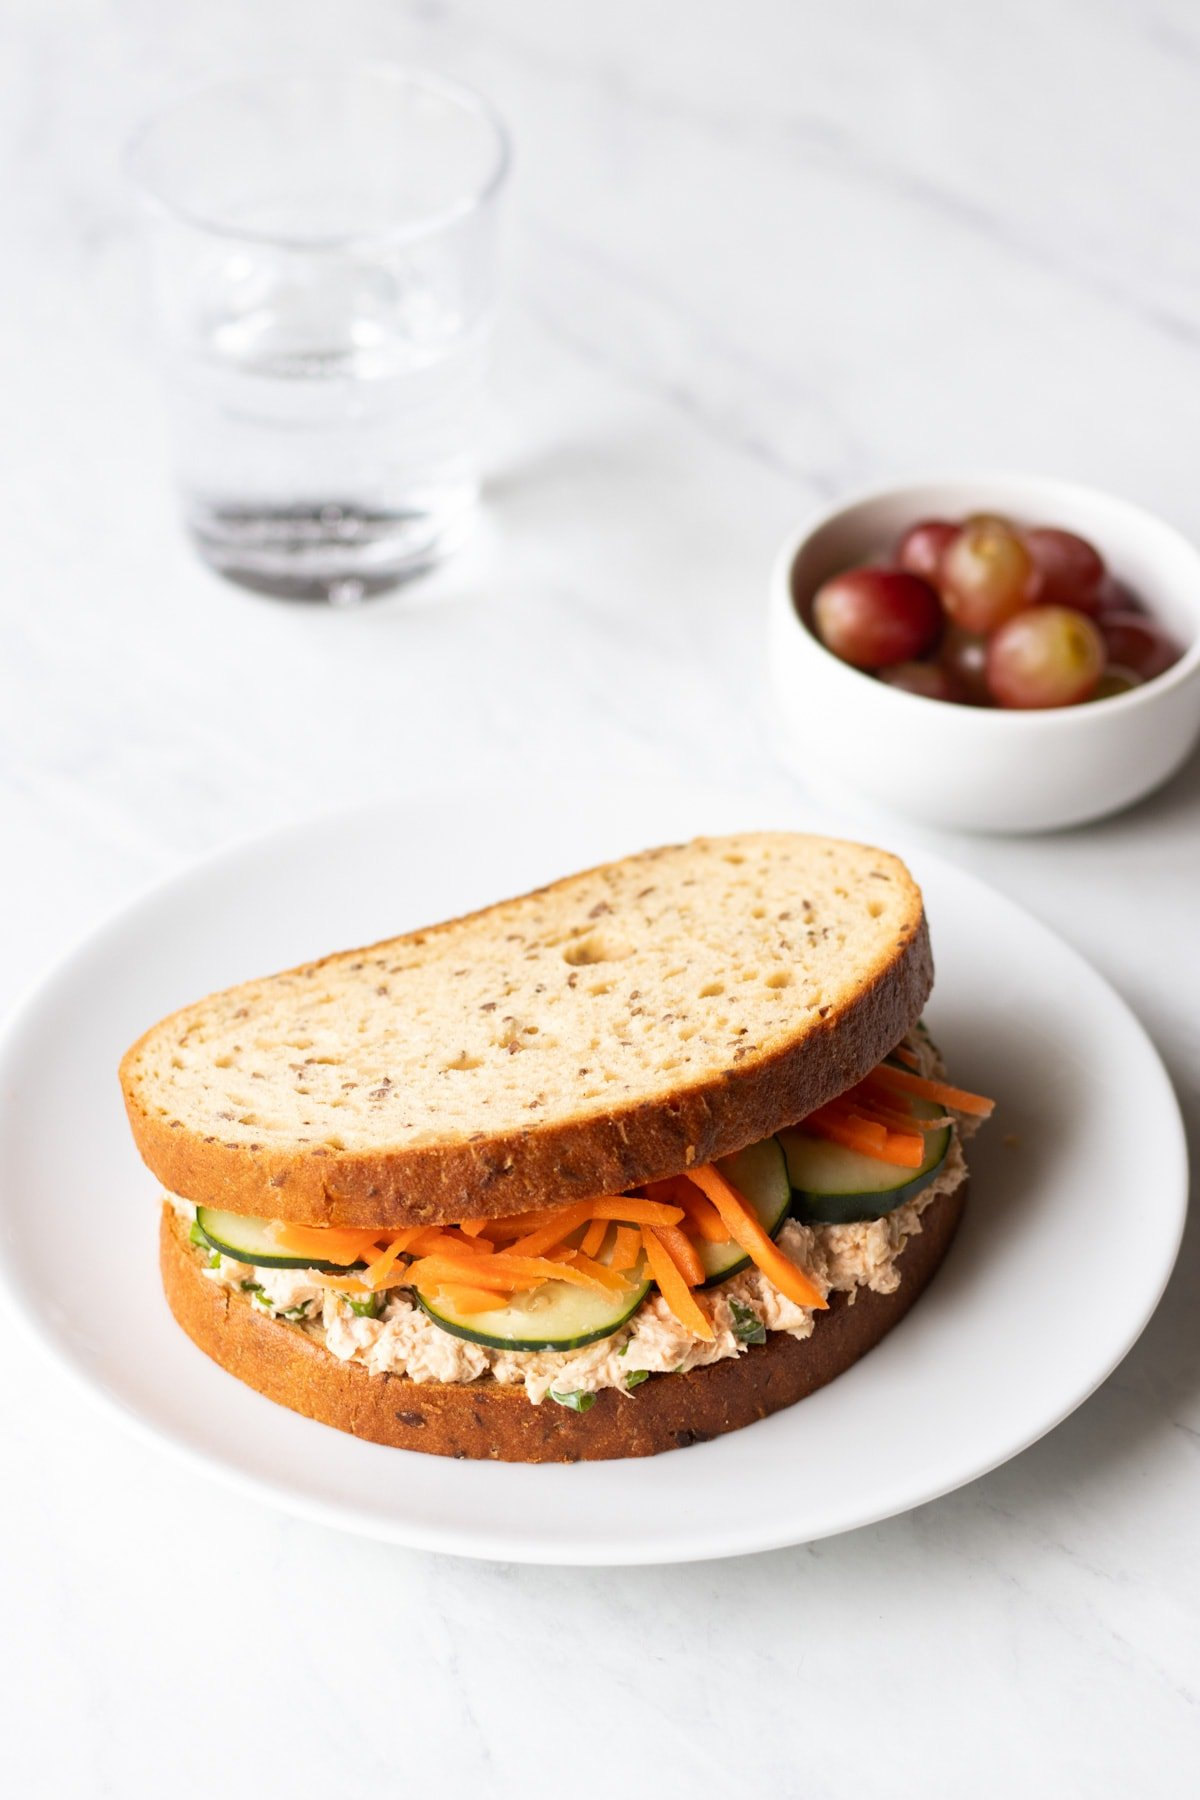 A low FODMAP spicy salmon salad sandwich on a white plate. A small bowl of red grapes and clear glass of water are in the background.